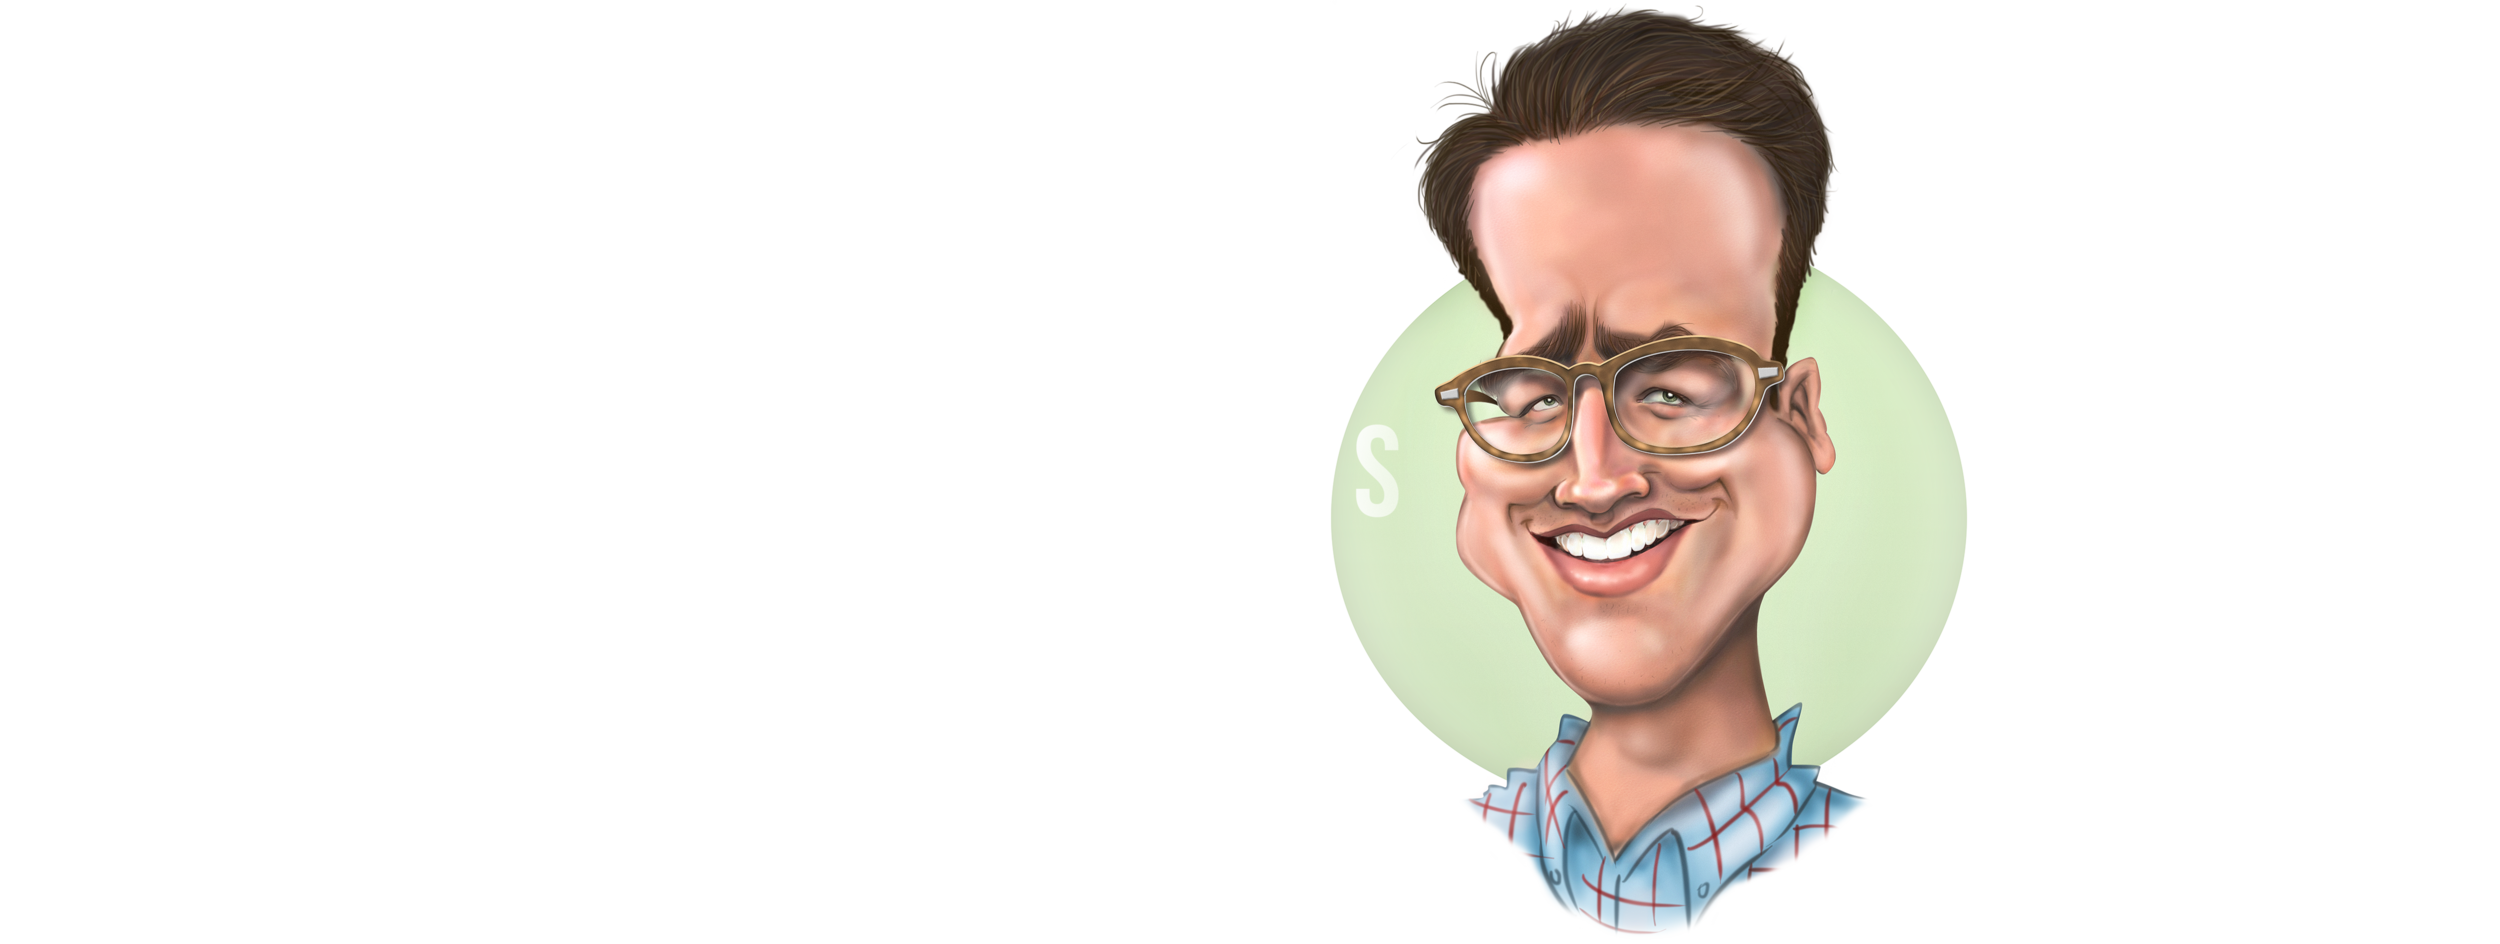 Caricatures By Brad Logo and Self Caricature